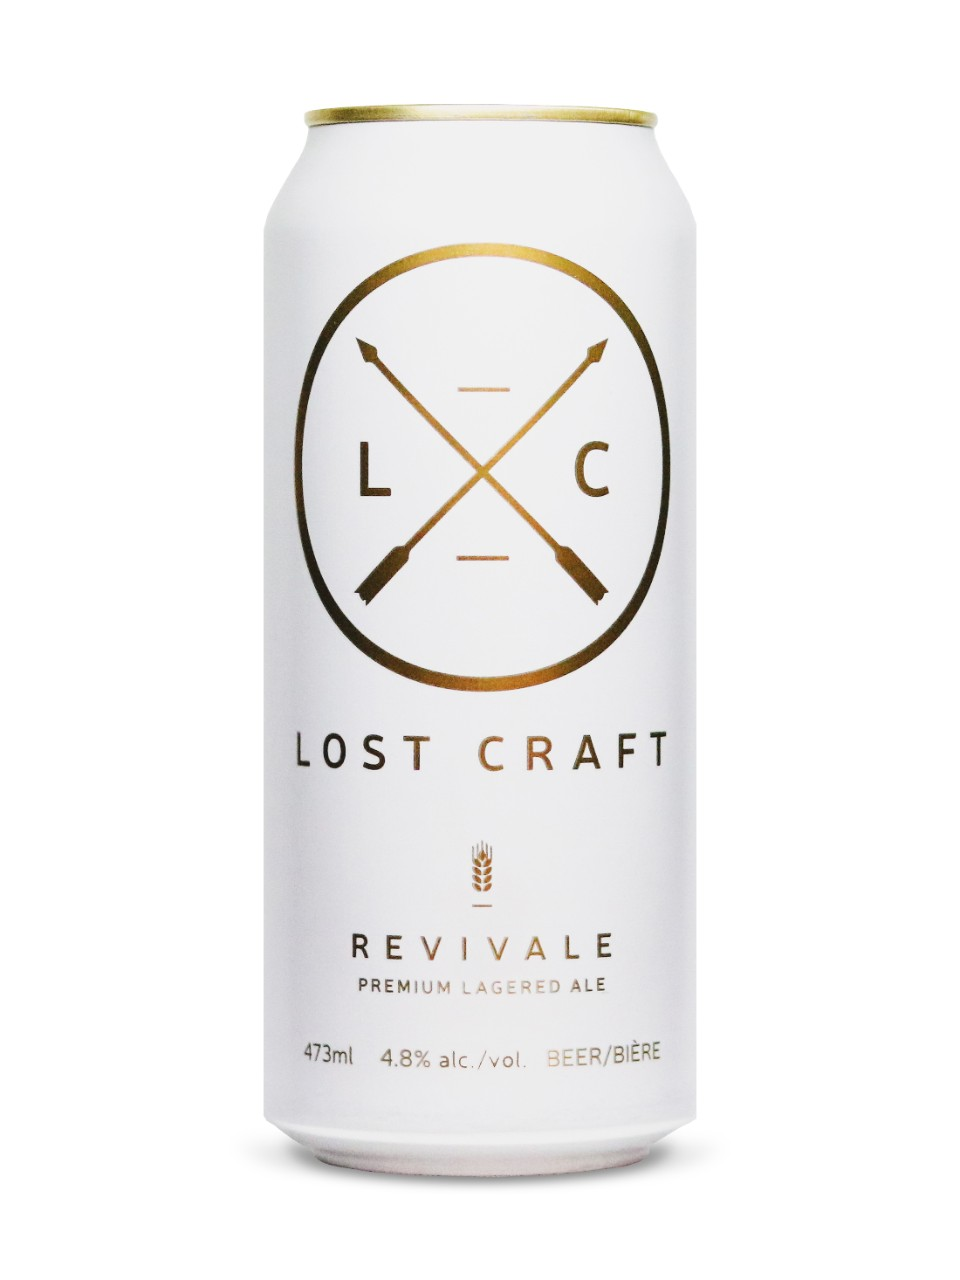 Lost Craft Revivale from LCBO